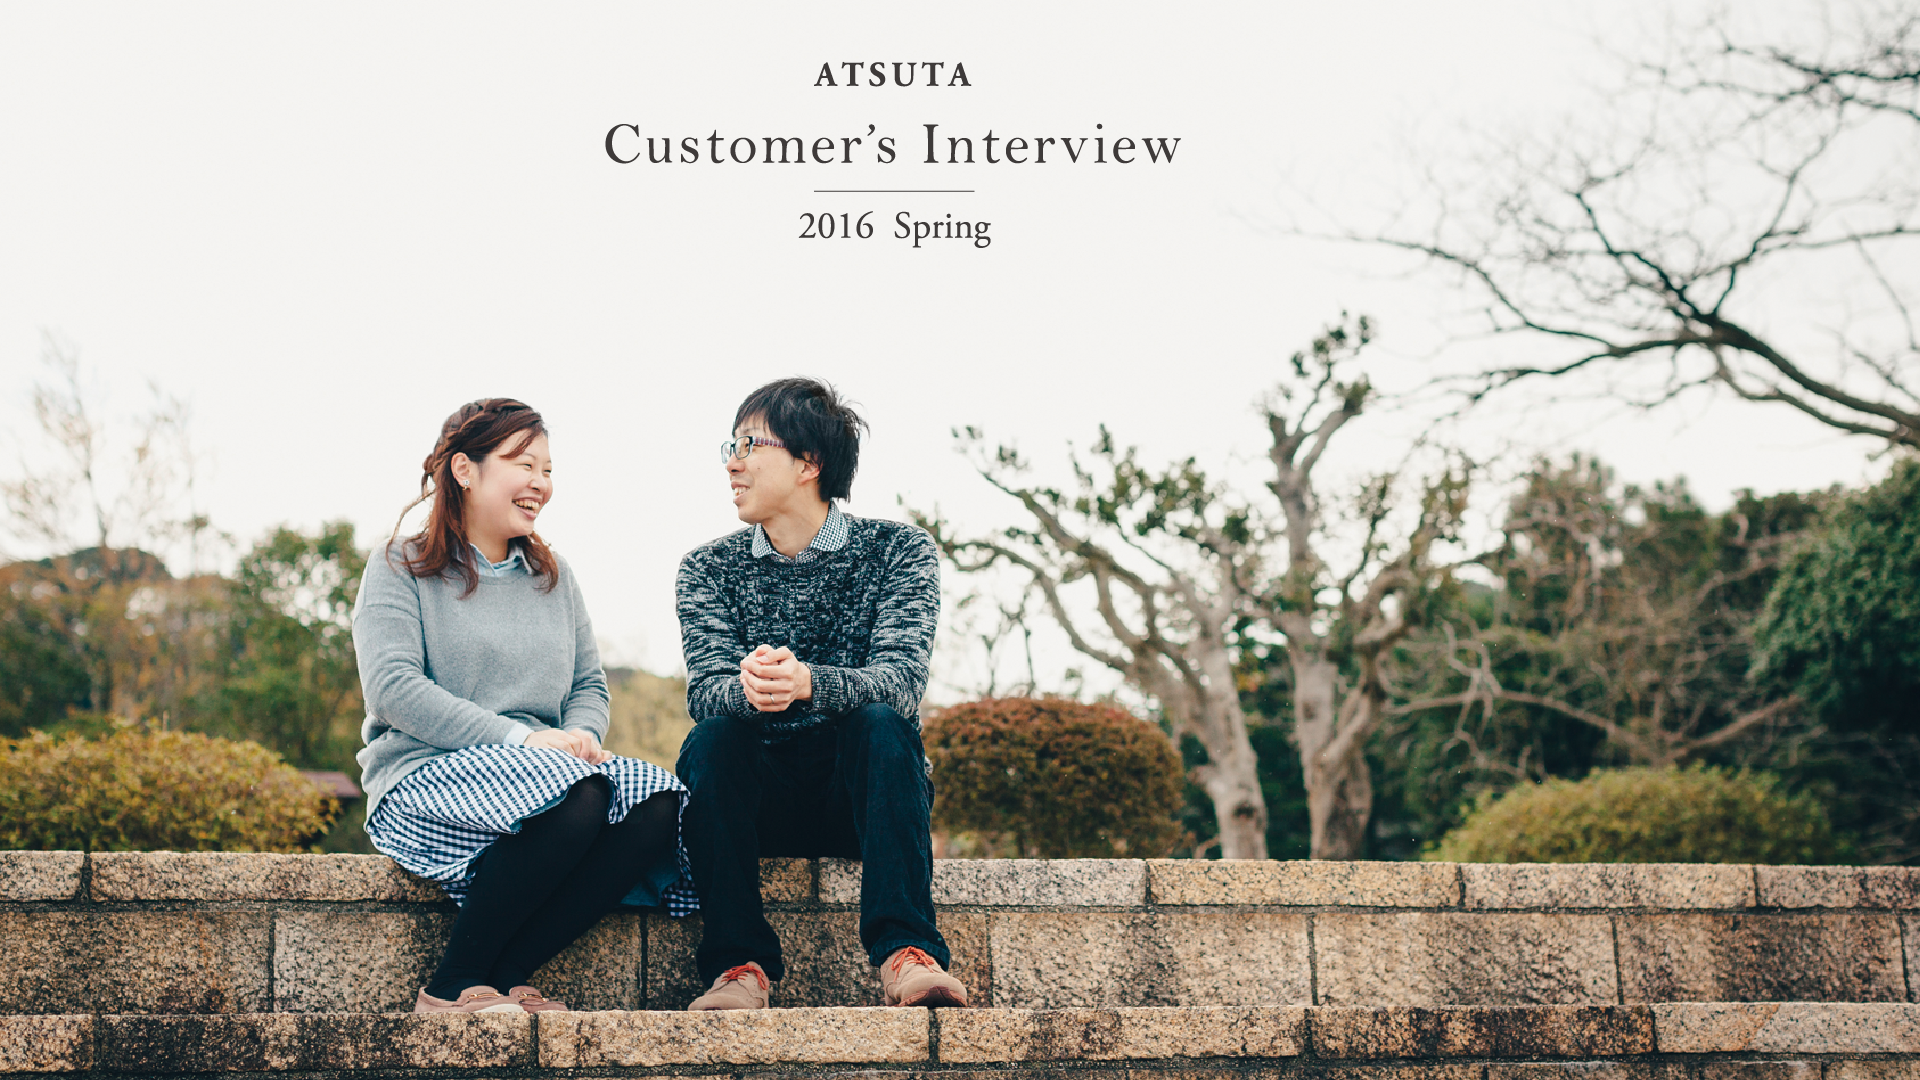 Costmer's Interview 2016 Spring